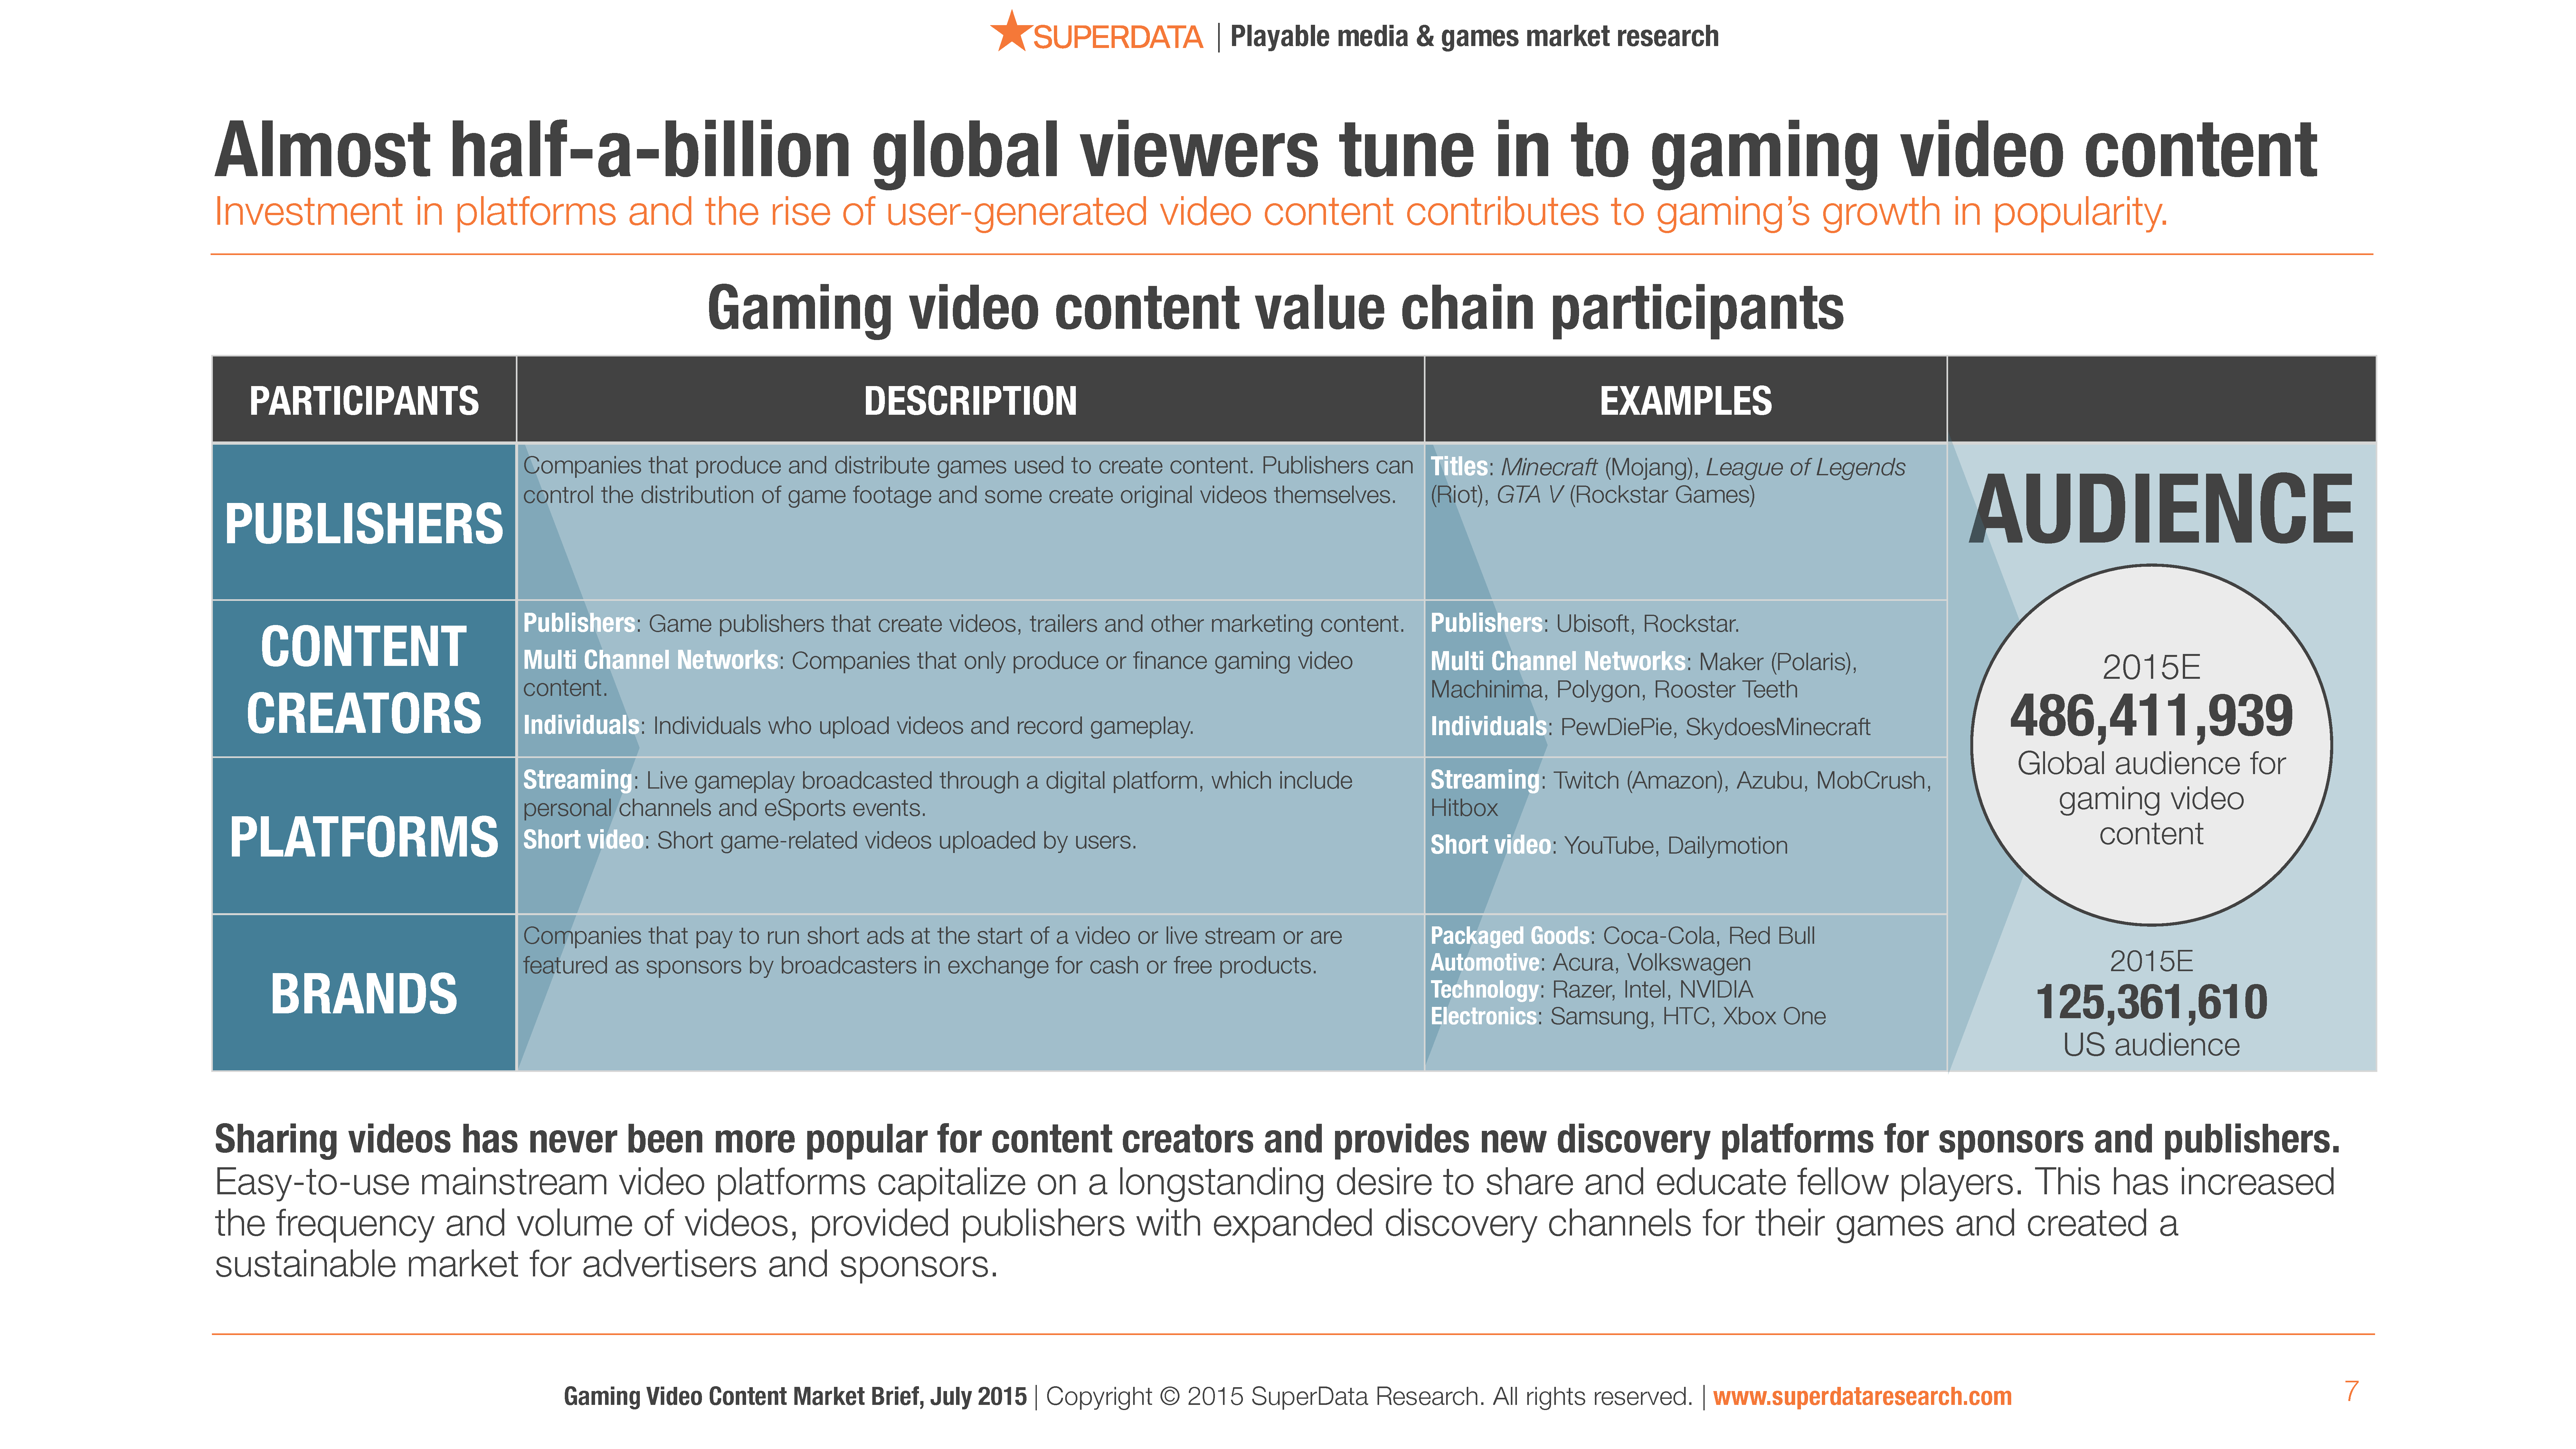 SuperData_Deliverable_Gaming_Video_Content_Market_Brief_2015_(1)-7